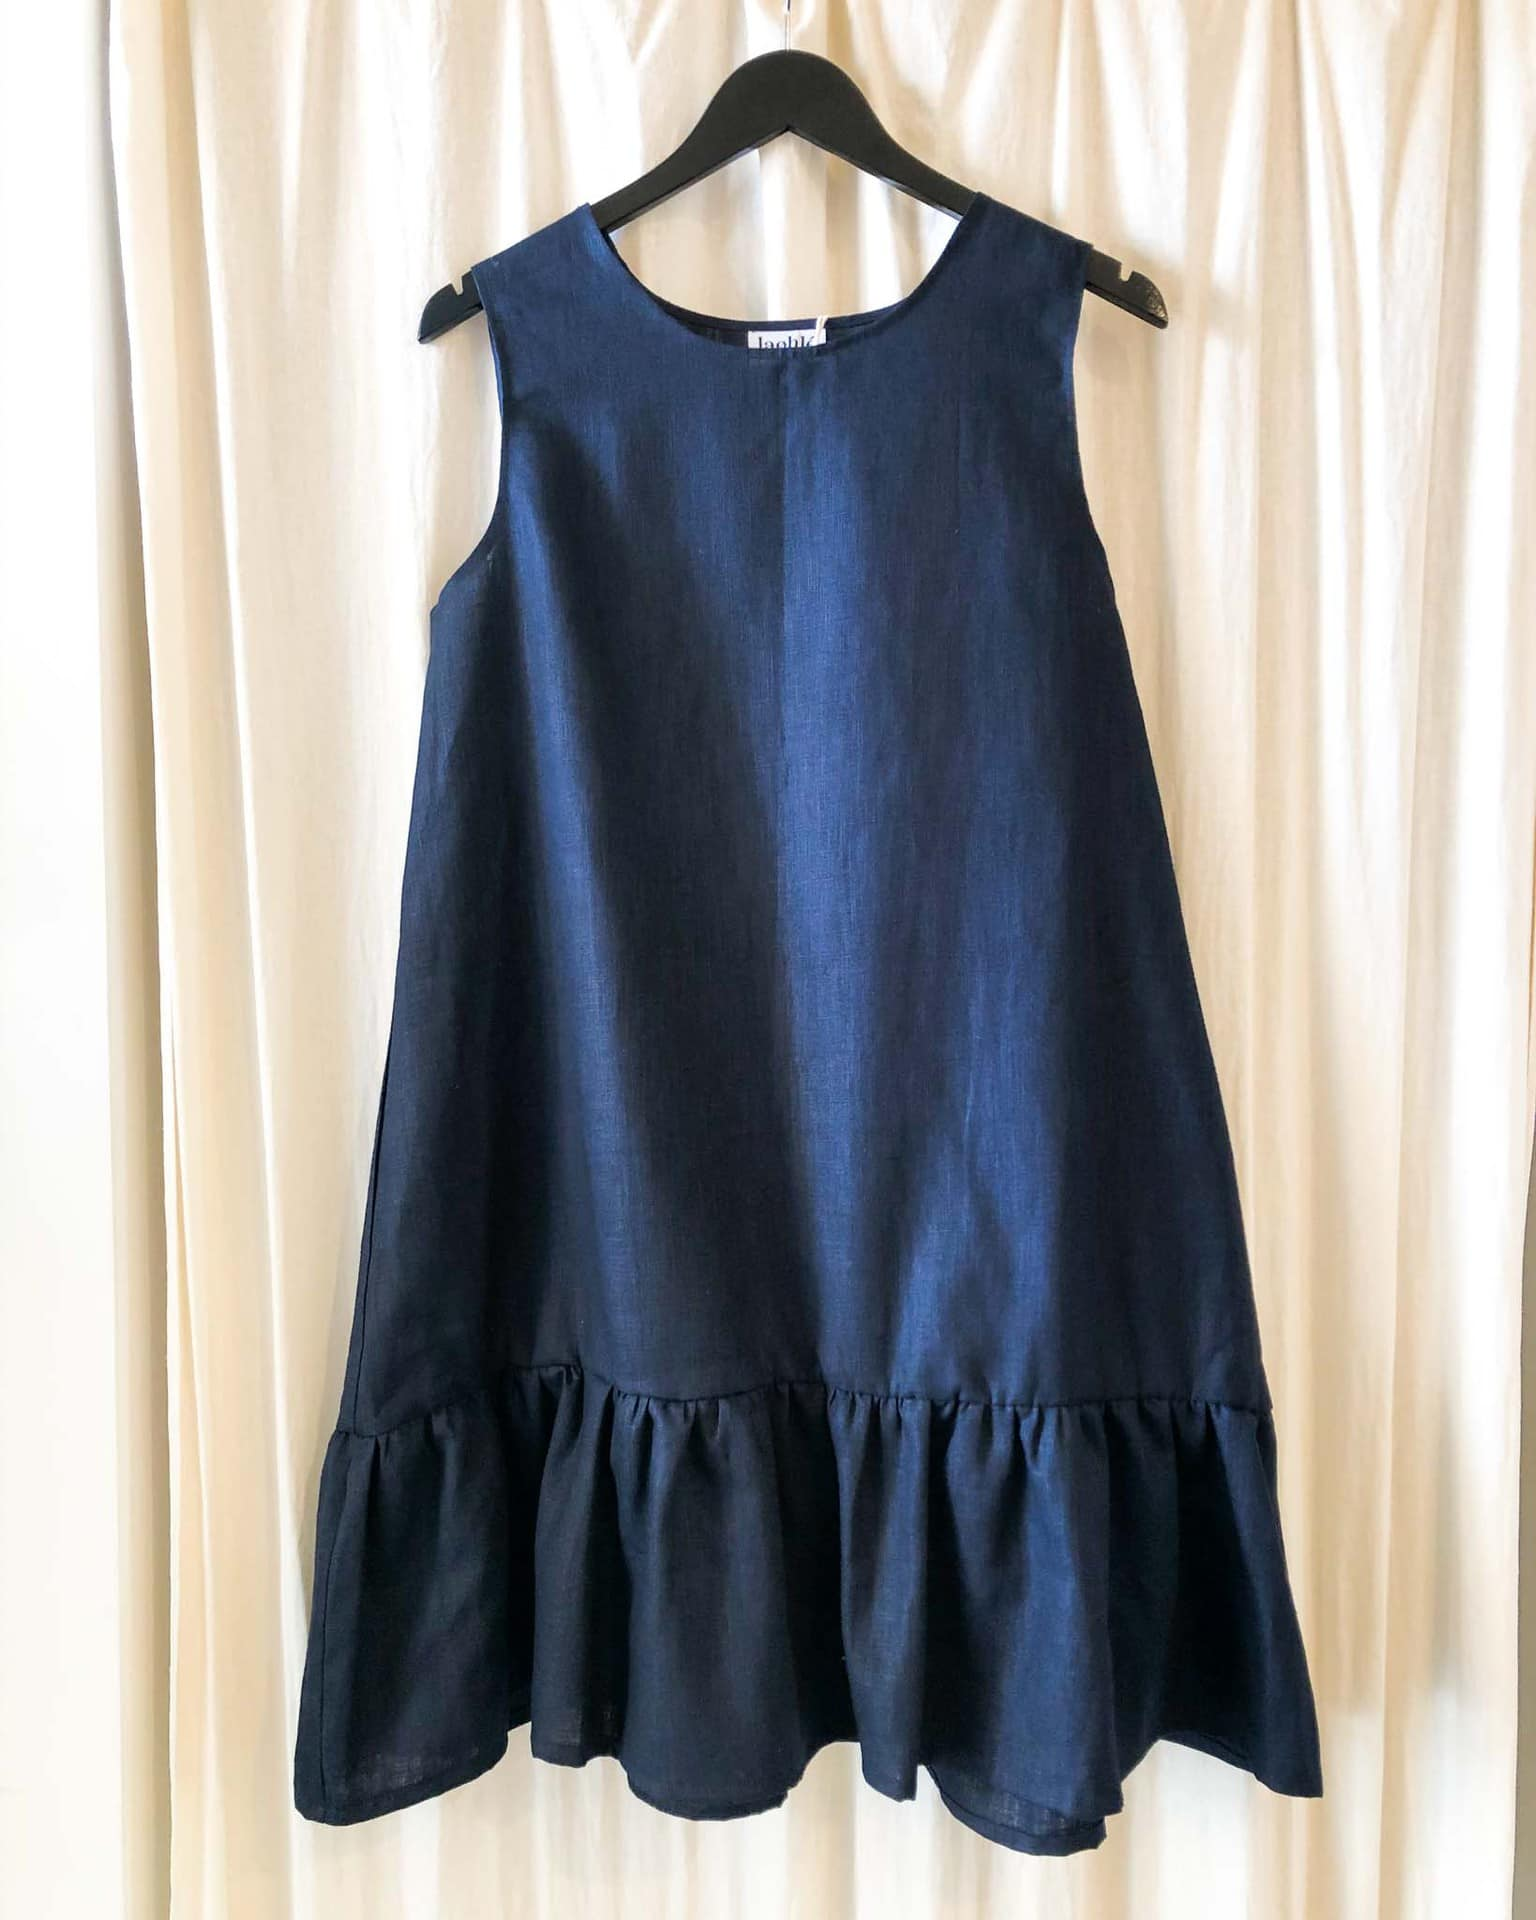 Mandy dress navy